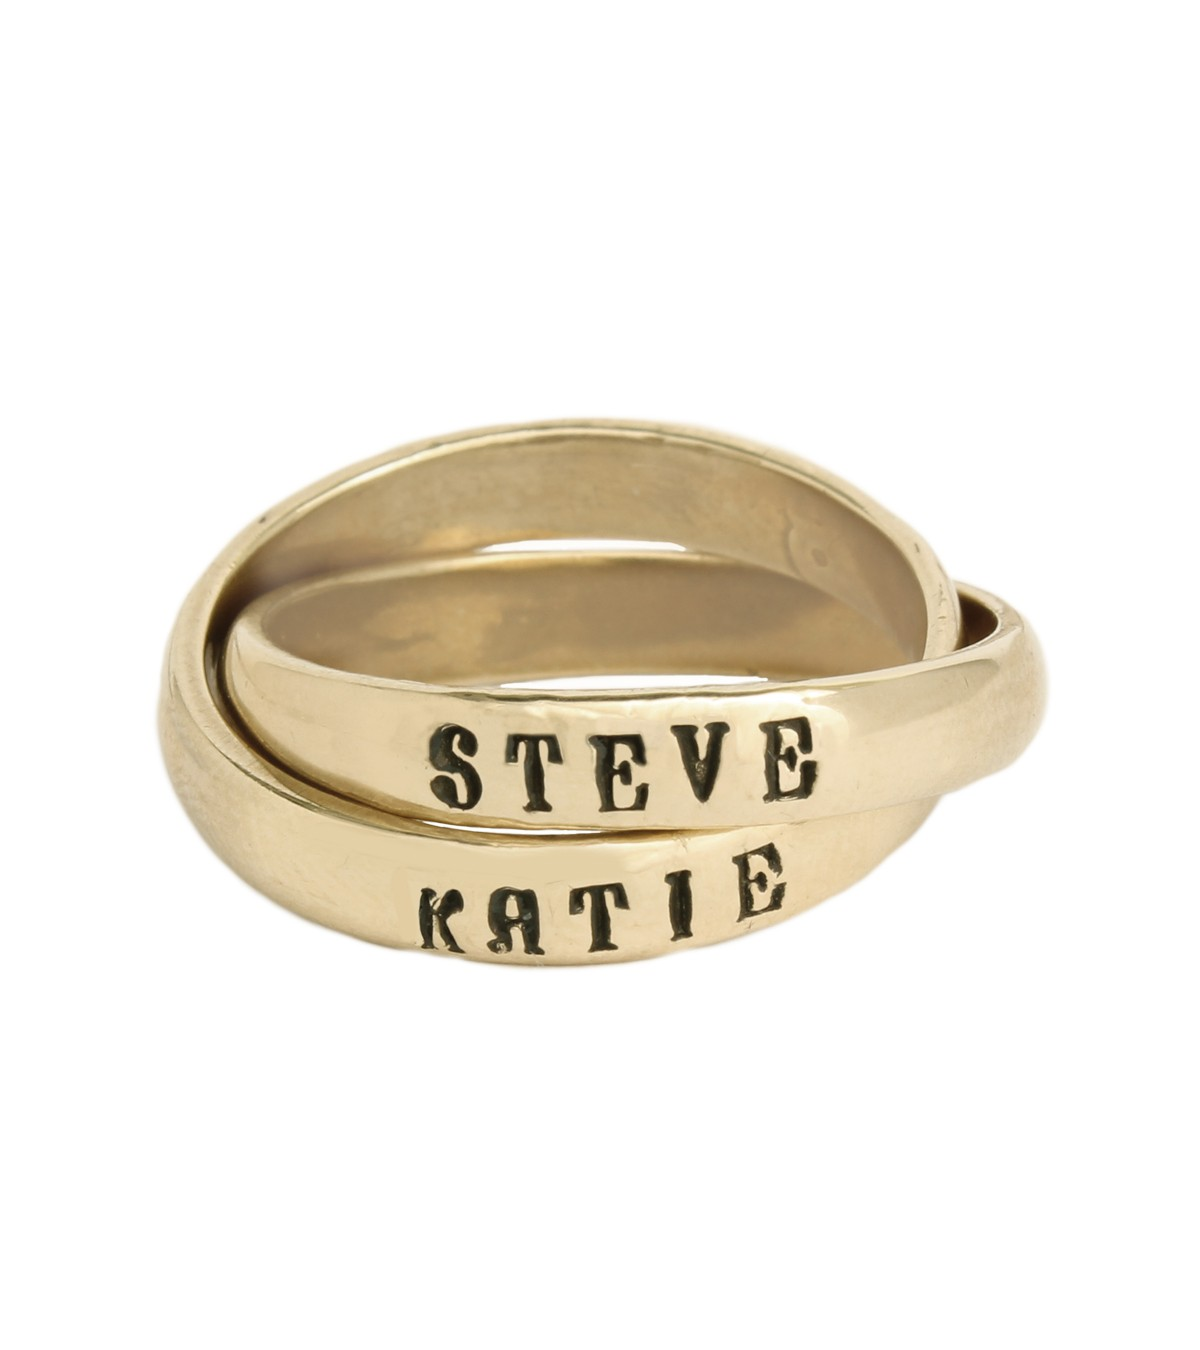 b43dd00c9a4fa Grandmother's Personalized Hand-Stamped Name Rings